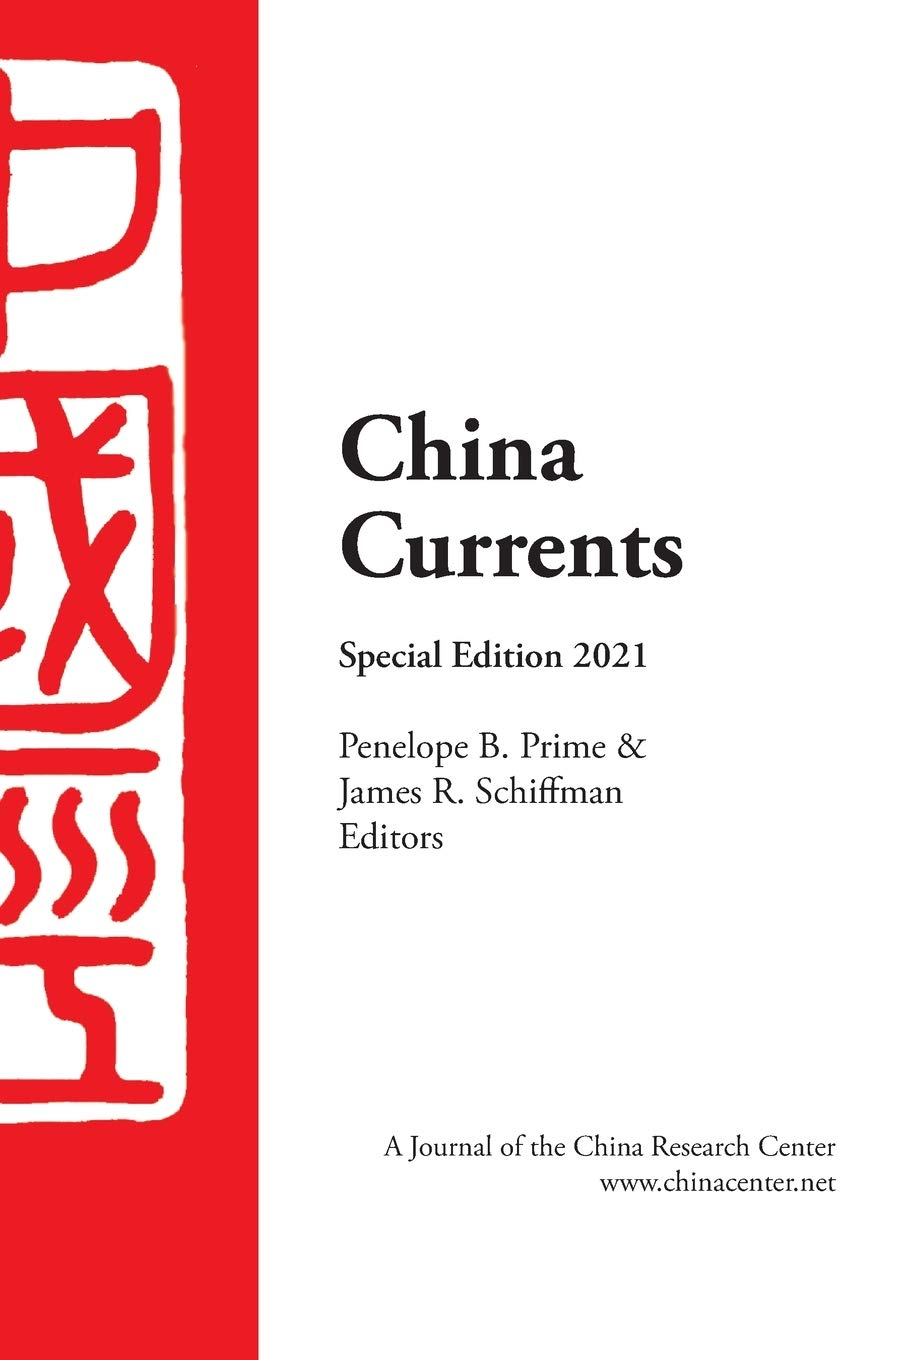 China Currents Special Edition 2021